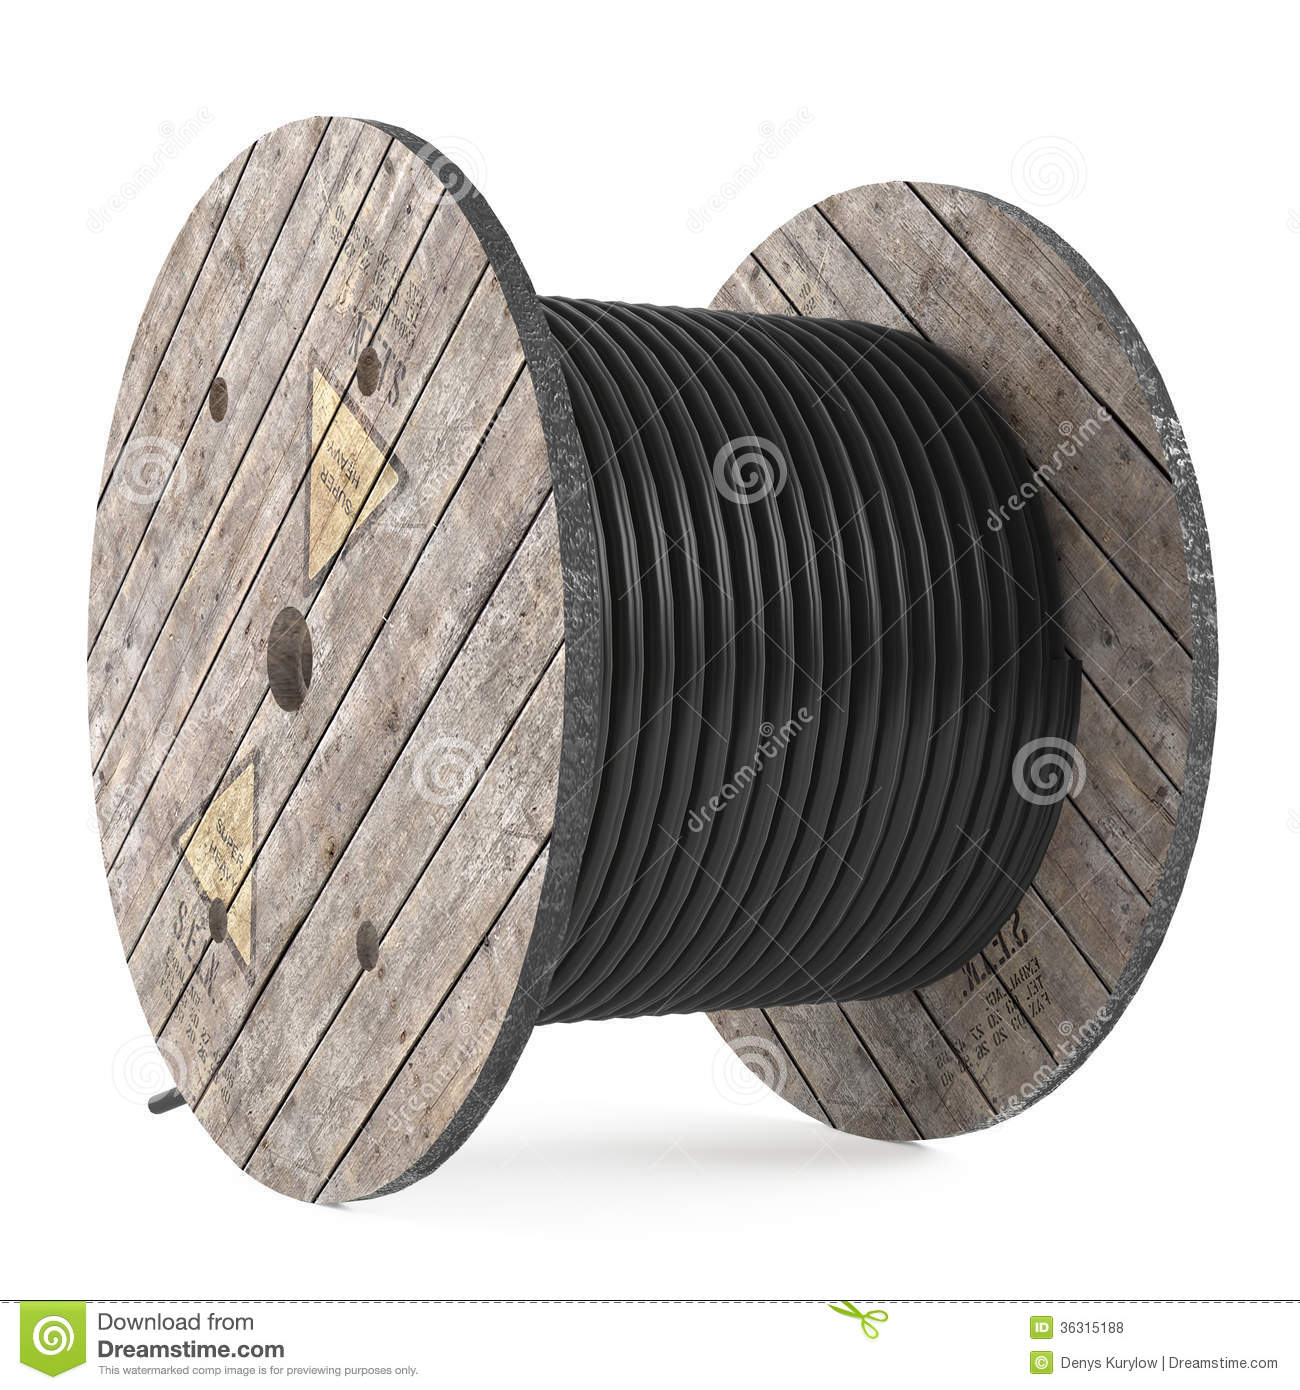 Cable Reel Stock Illustrations – 272 Cable Reel Stock Illustrations ...